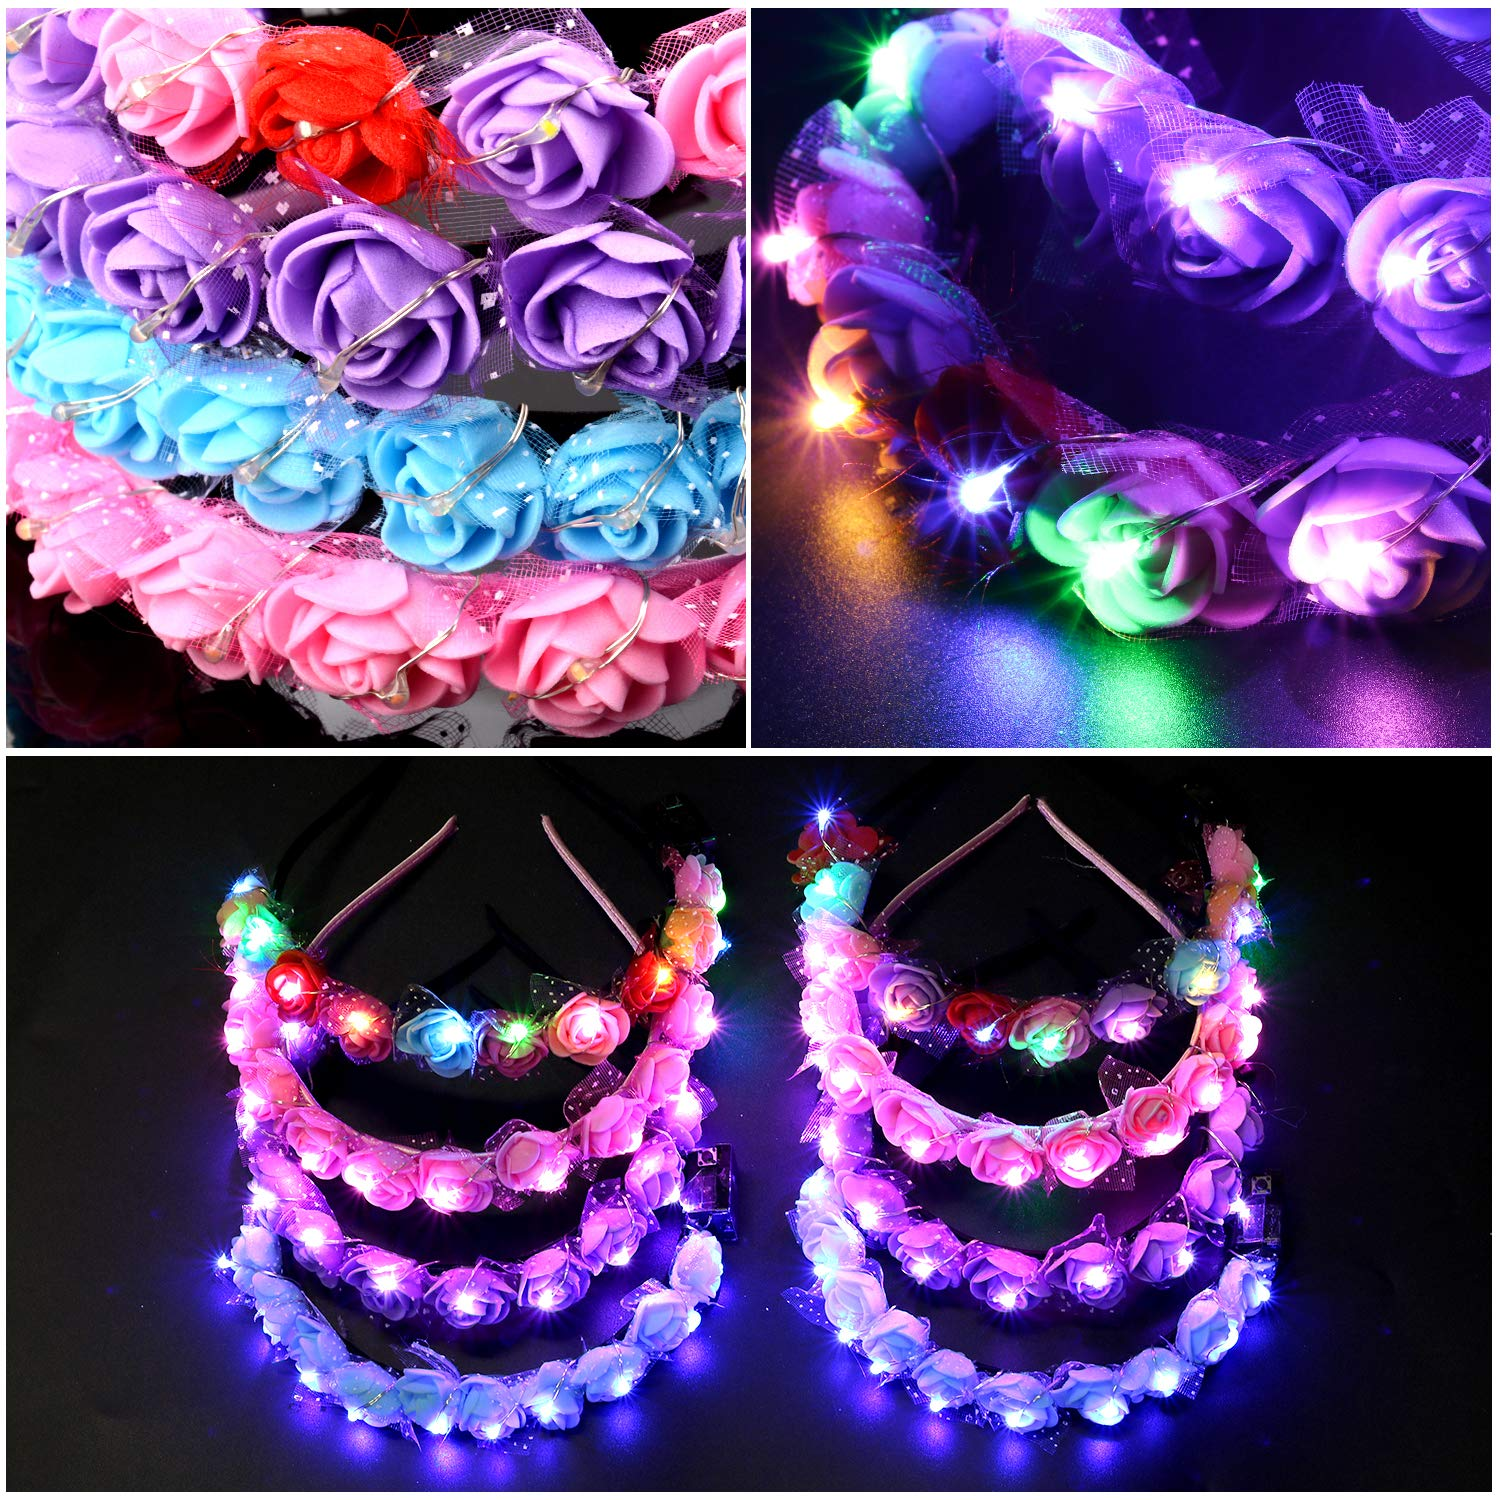 Legendog 8PCS Led Headband, Fashion Faux Flower Headbands for Women, Light Up Flower Headband, Led Flower Headband for Kids Teens Girls Women Birthday Wedding Holiday Christmas Halloween Party